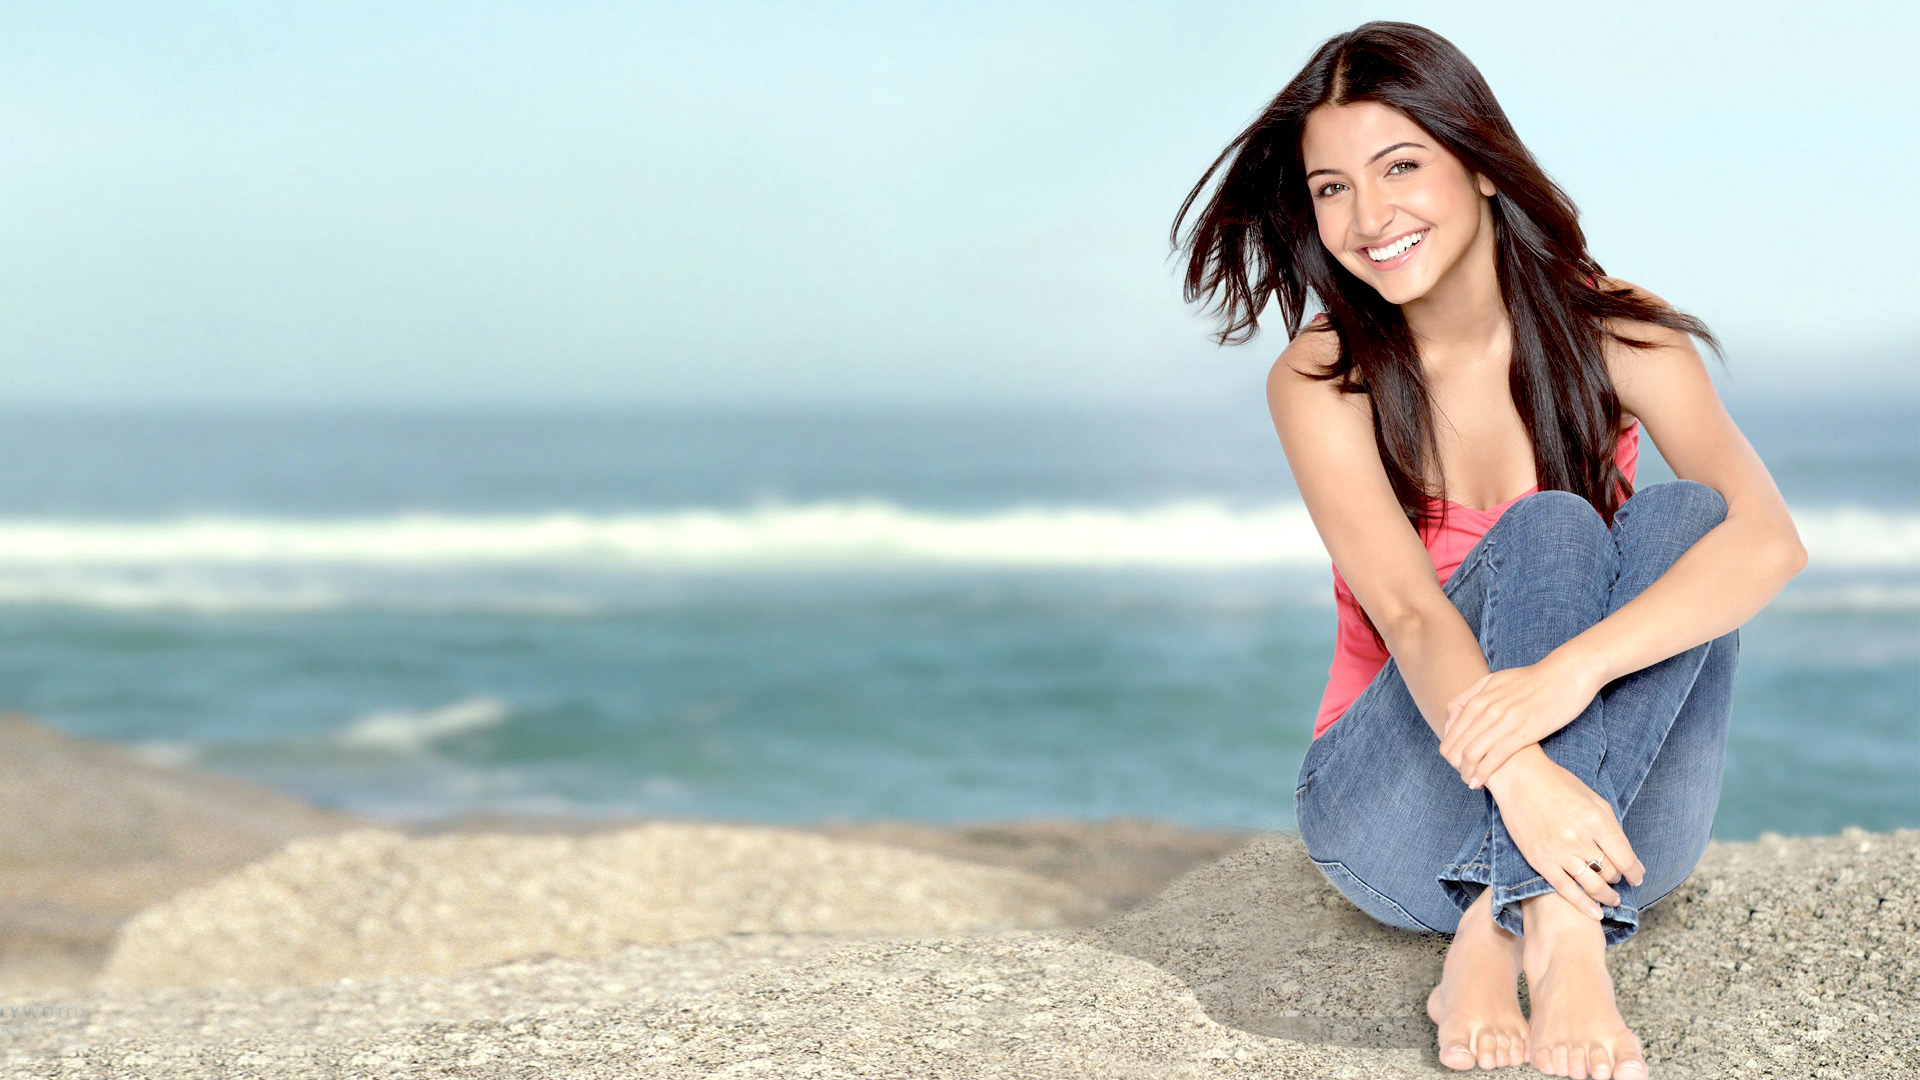 actress anushka sharma wallpapers | wallpapers hd